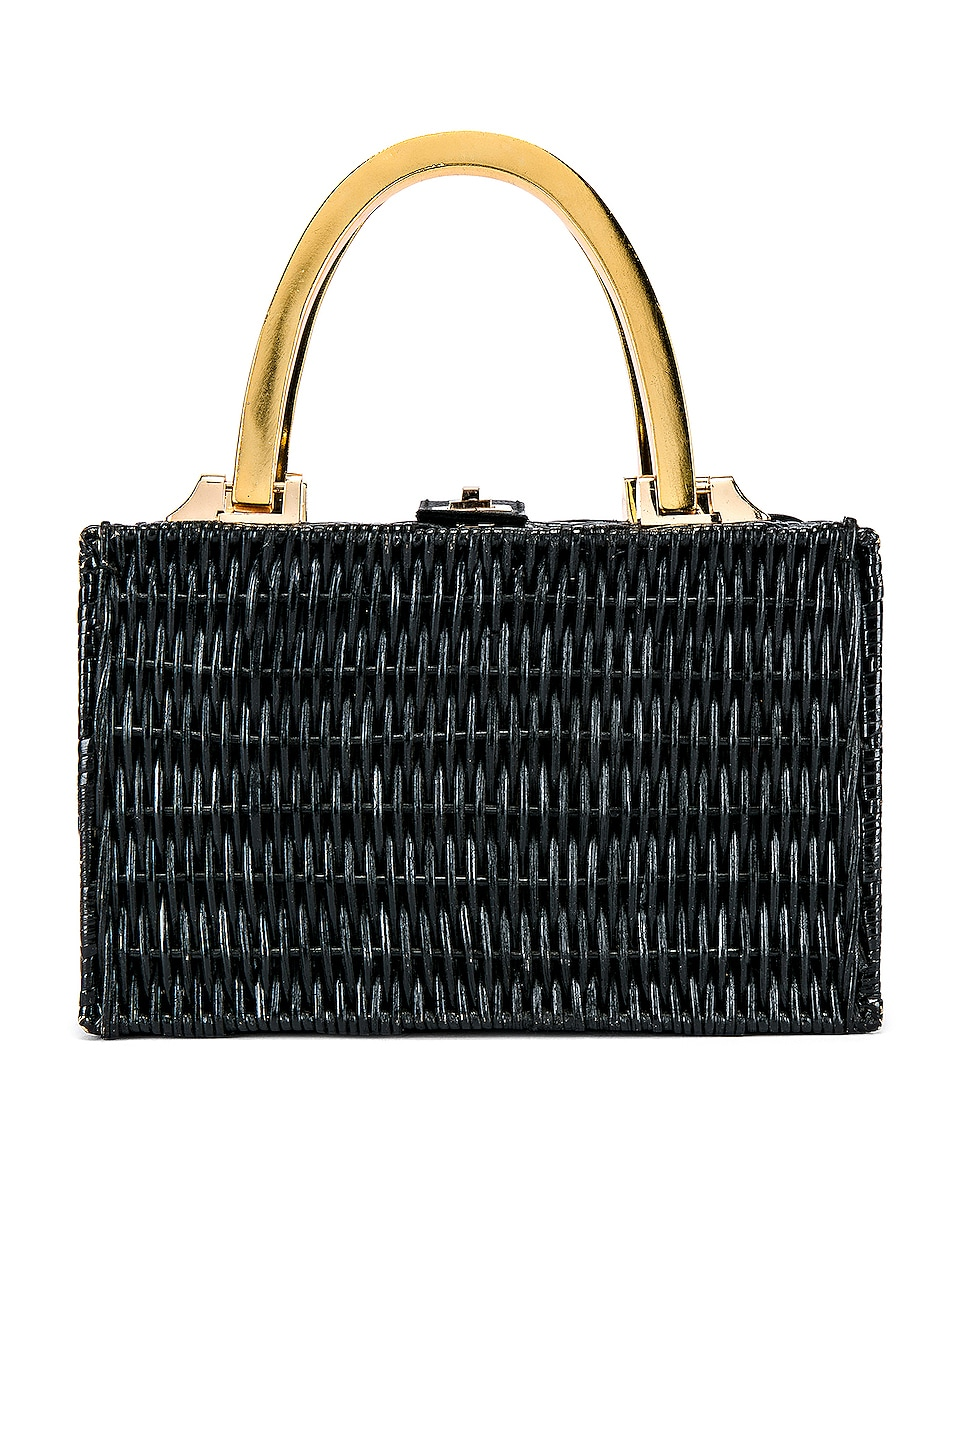 Cleobella Bardot Basket Bag in Black